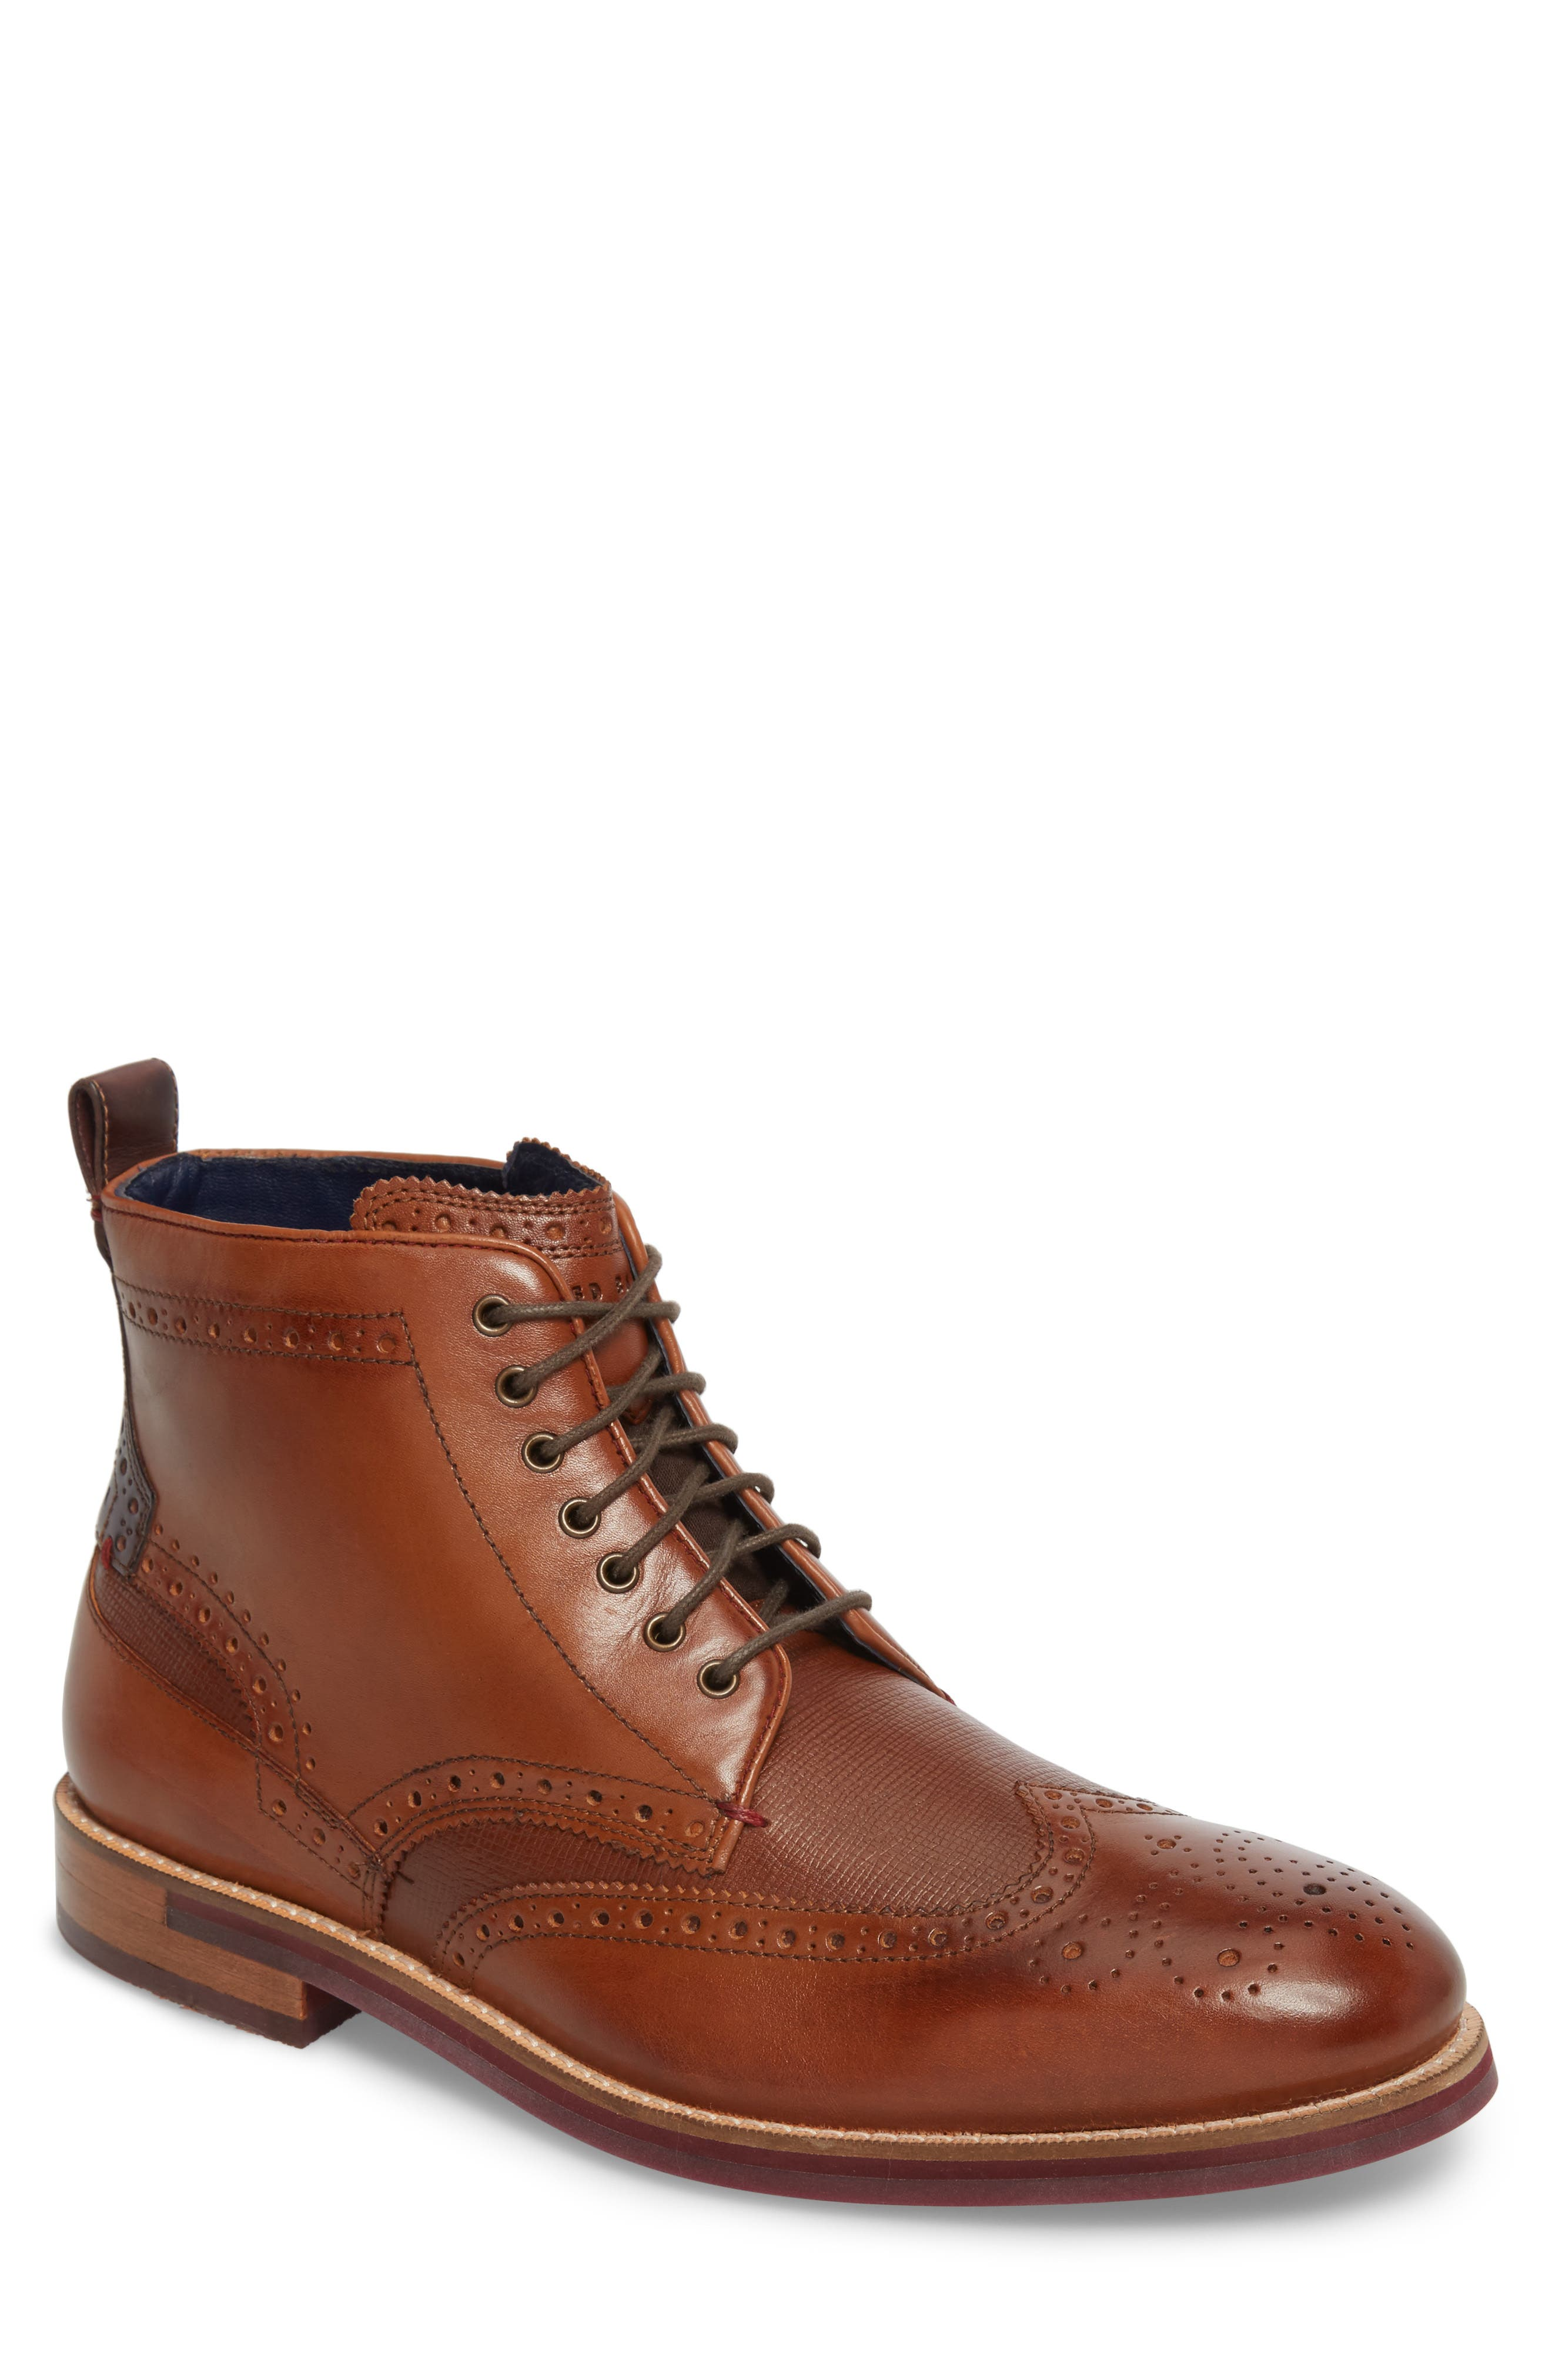 Hjenno Wingtip Boot,                         Main,                         color, TAN LEATHER